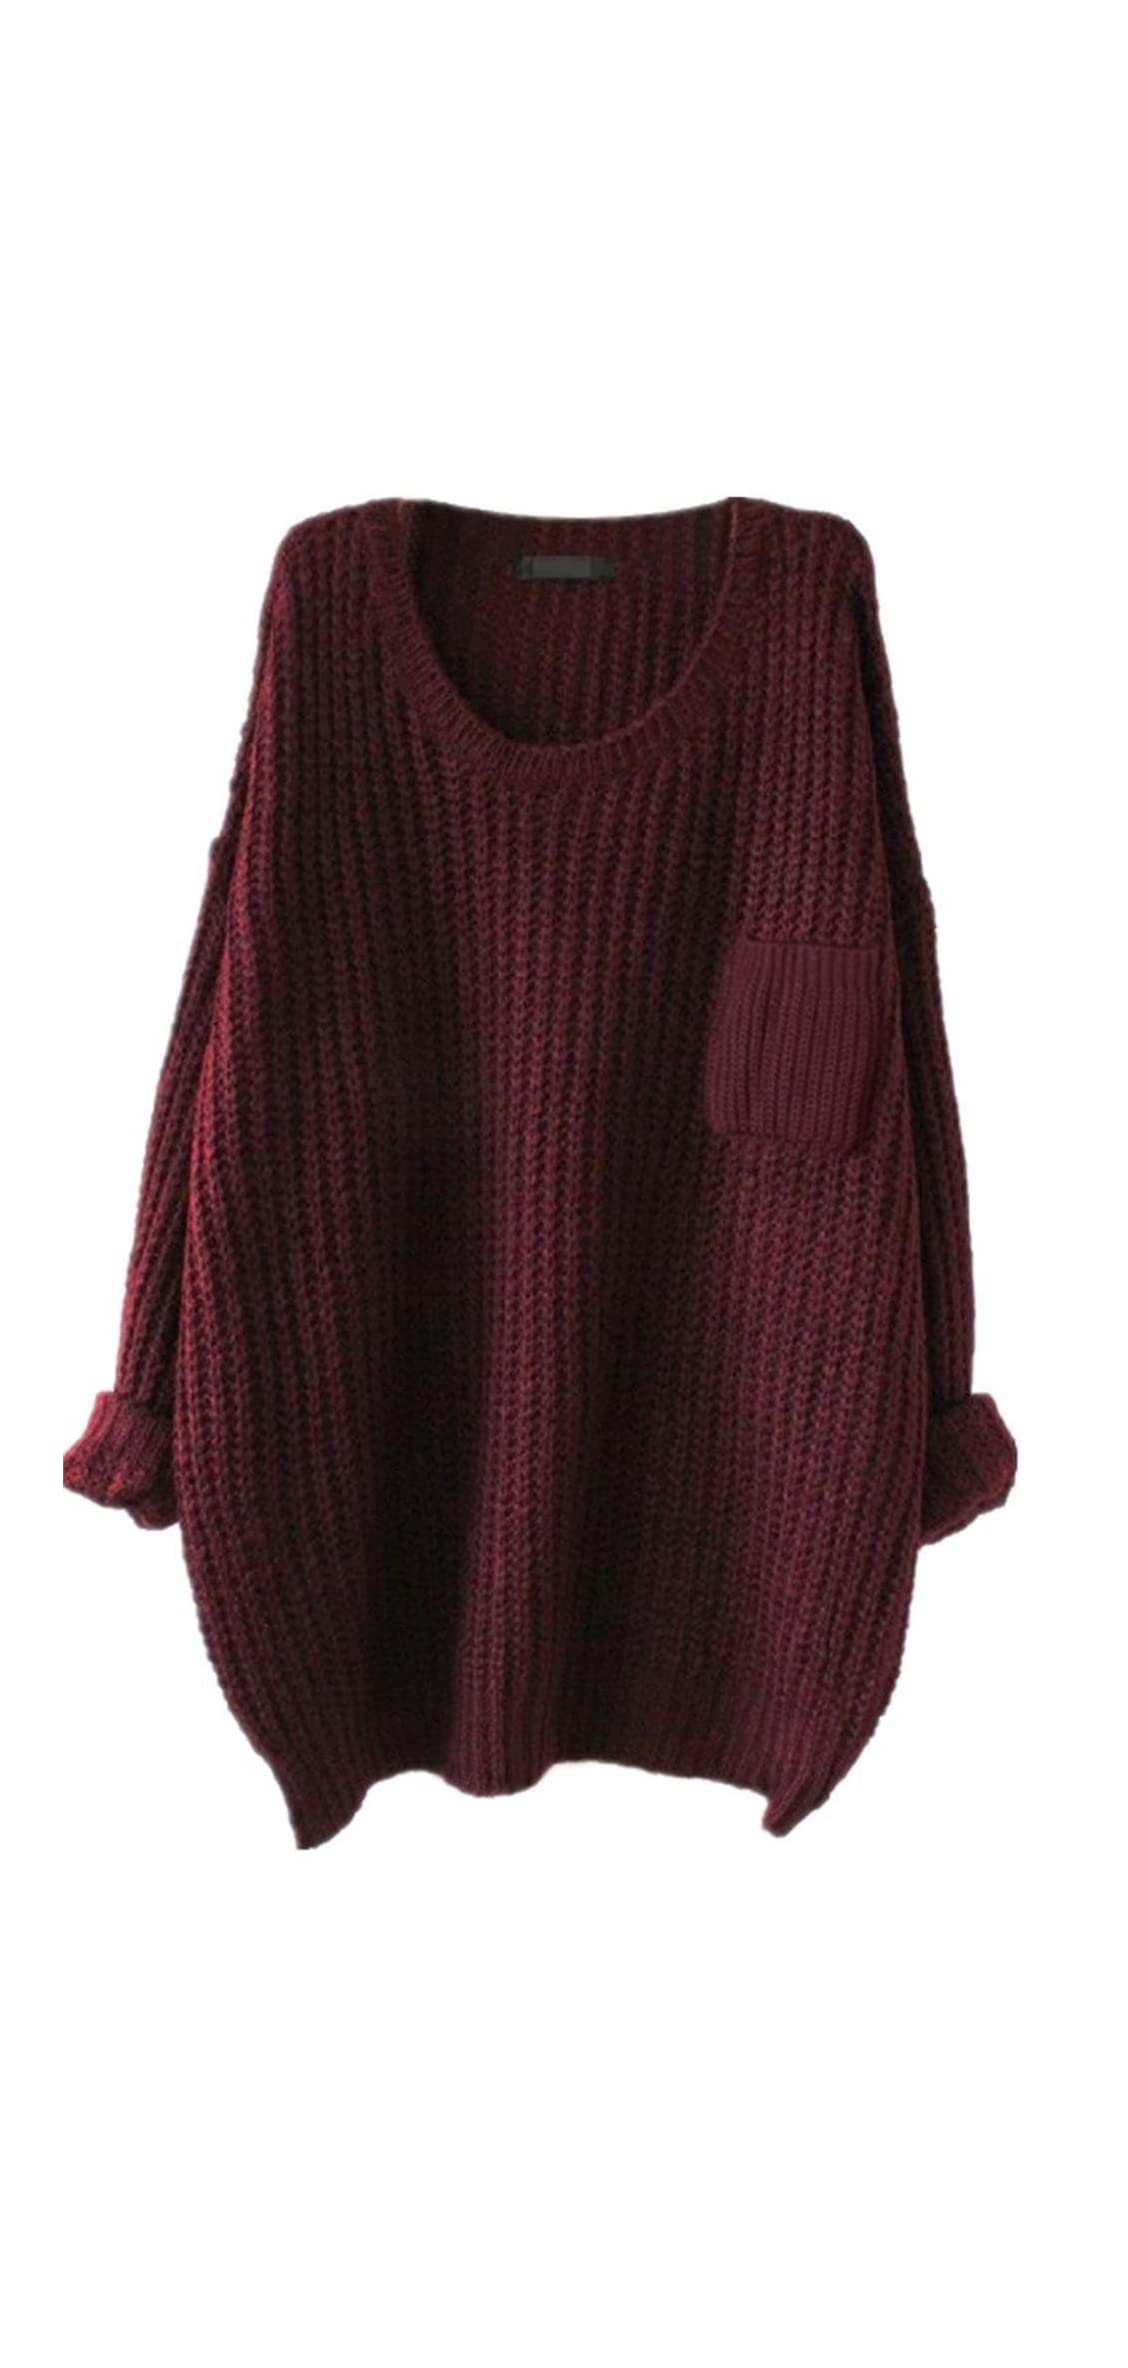 Womens Casual Unbalanced Crew Neck Knit Sweater Loose Pullover